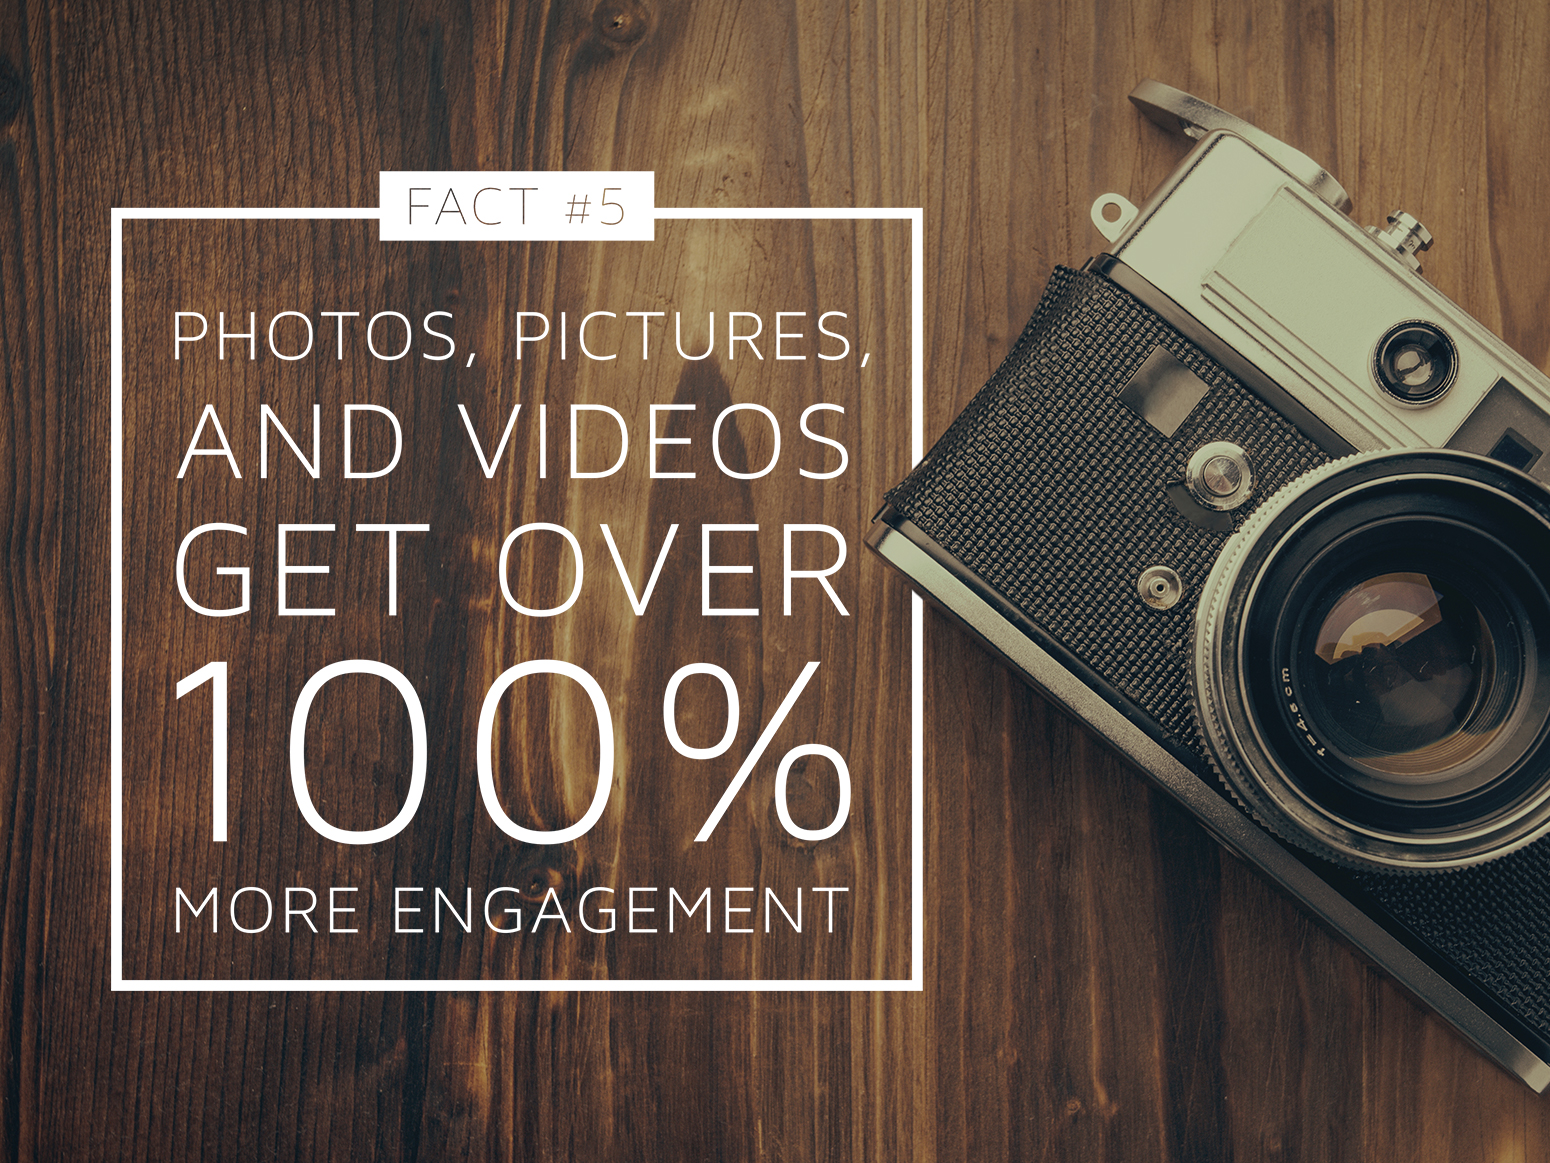 5-photos-pictures-and-videos-get-over-100percent-more-engagement